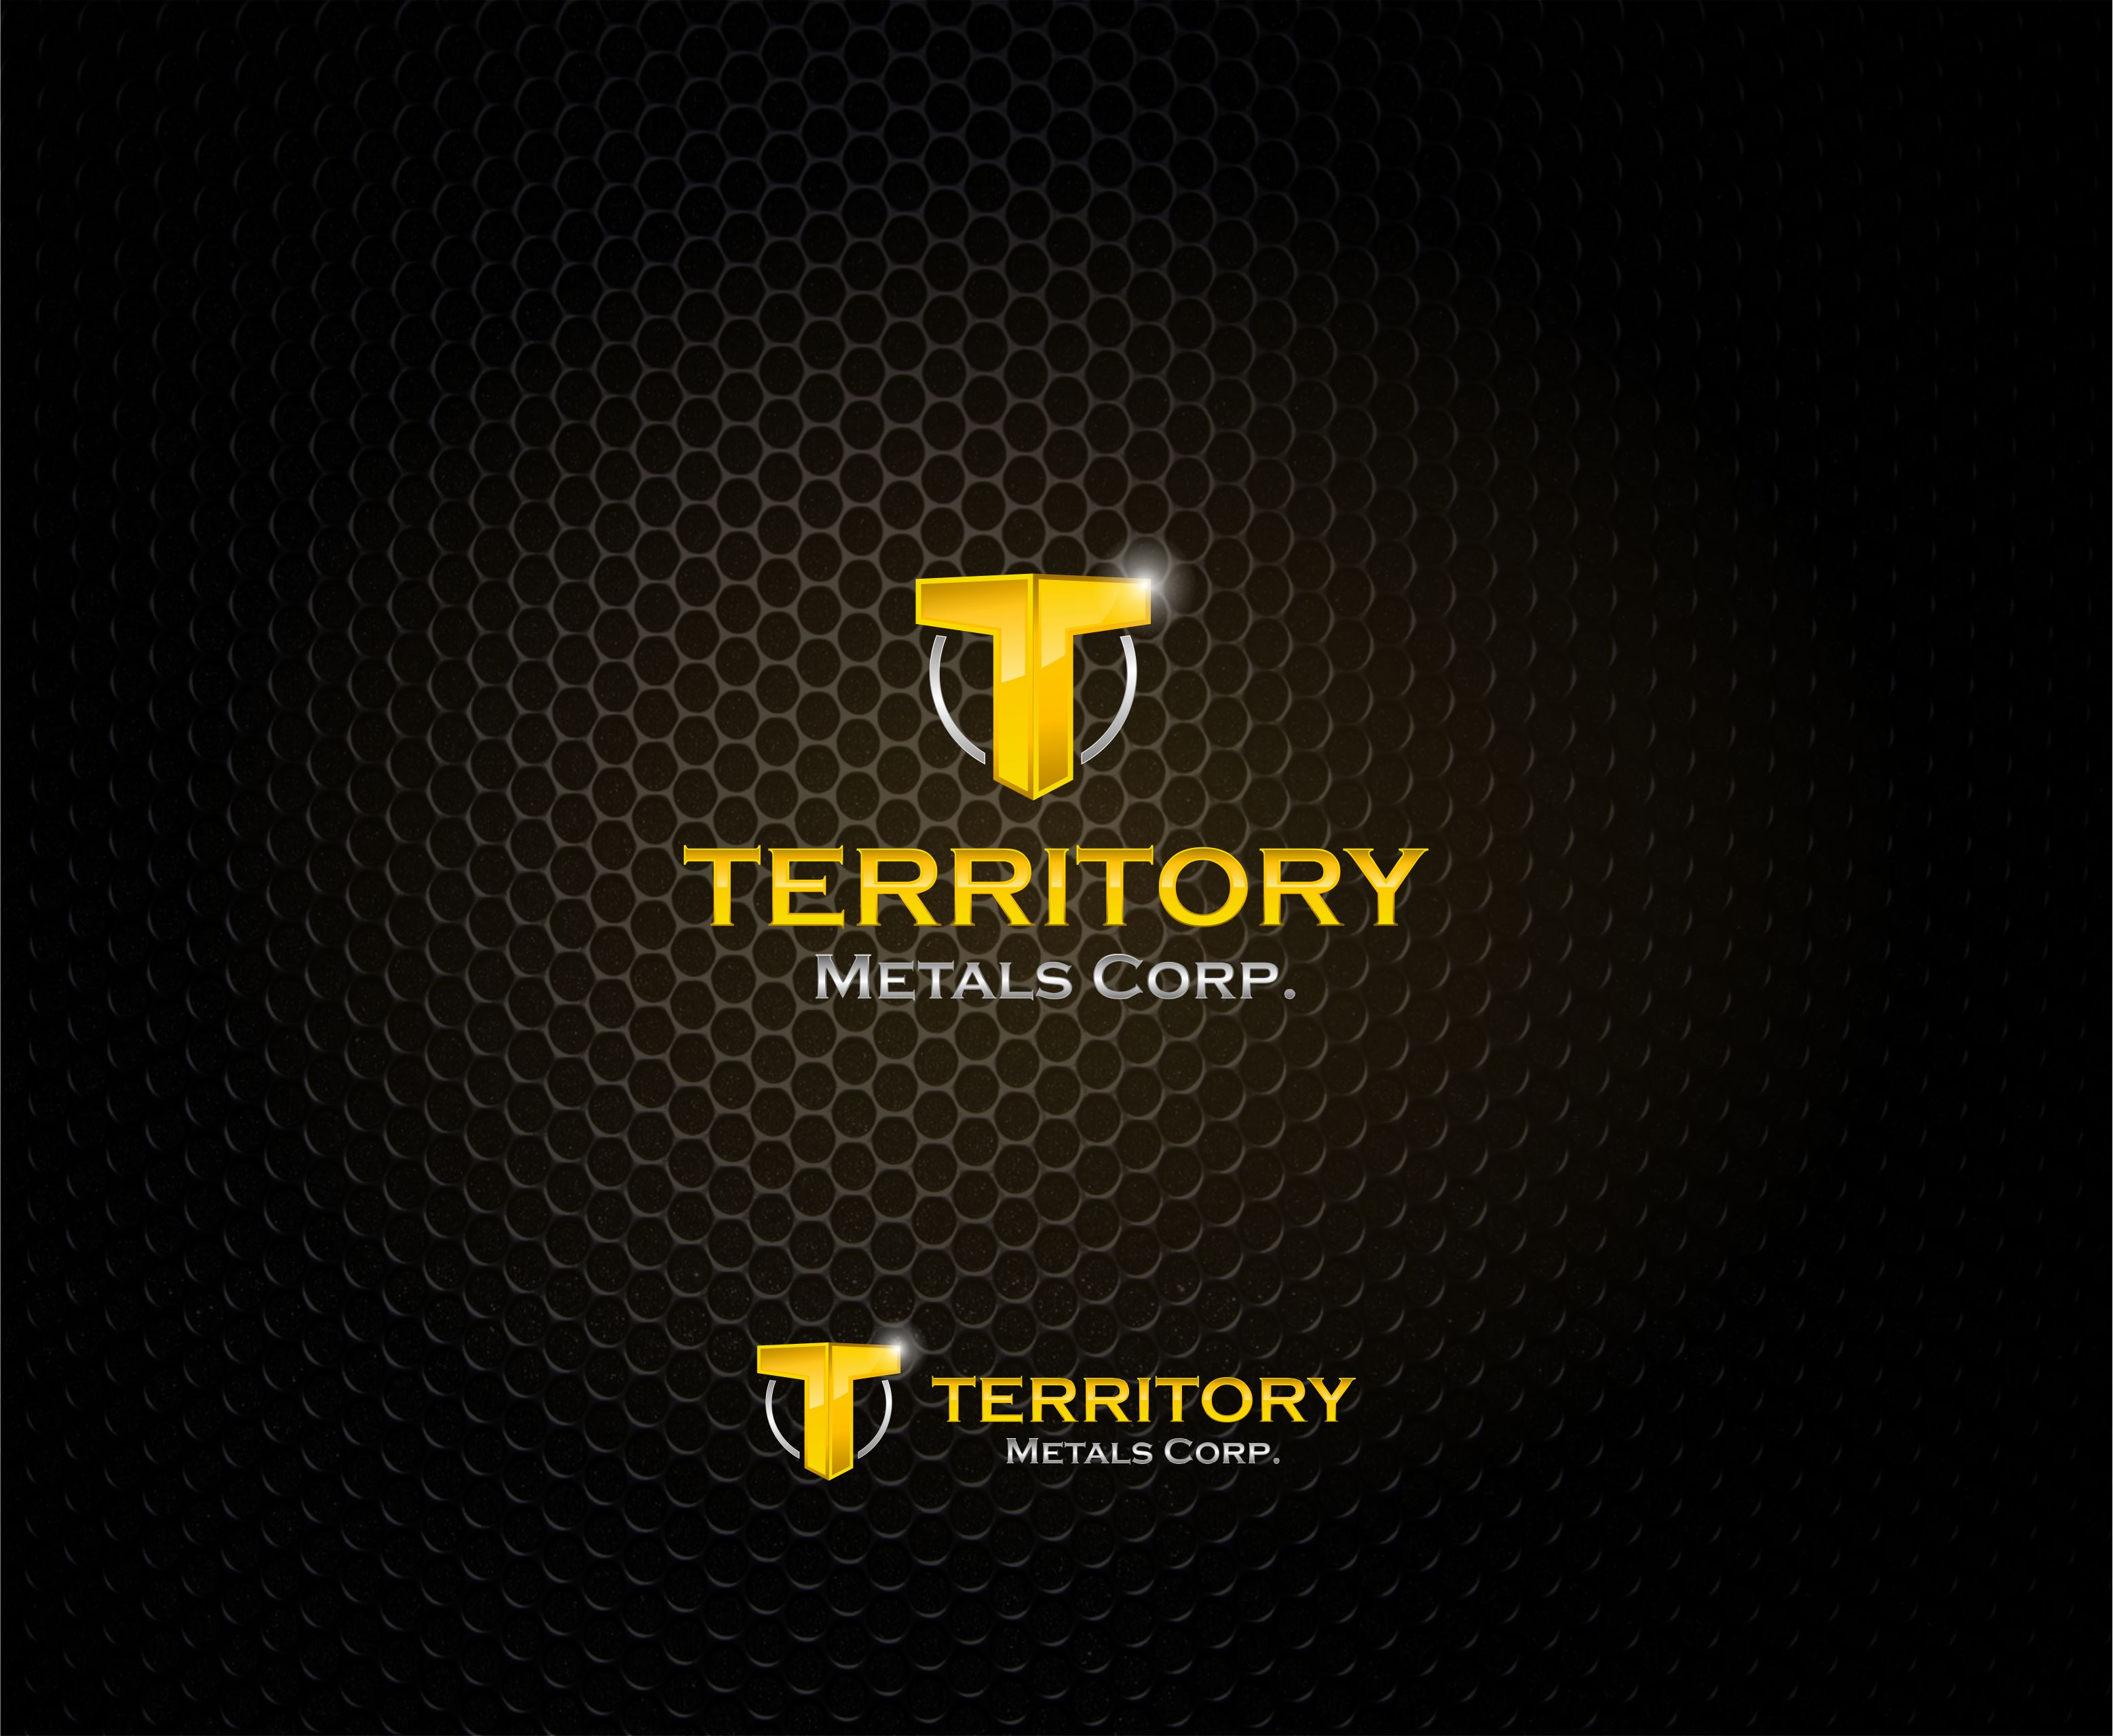 Logo Design by Raymond Garcia - Entry No. 157 in the Logo Design Contest Unique Logo Design Wanted for Territory Metals Corp..